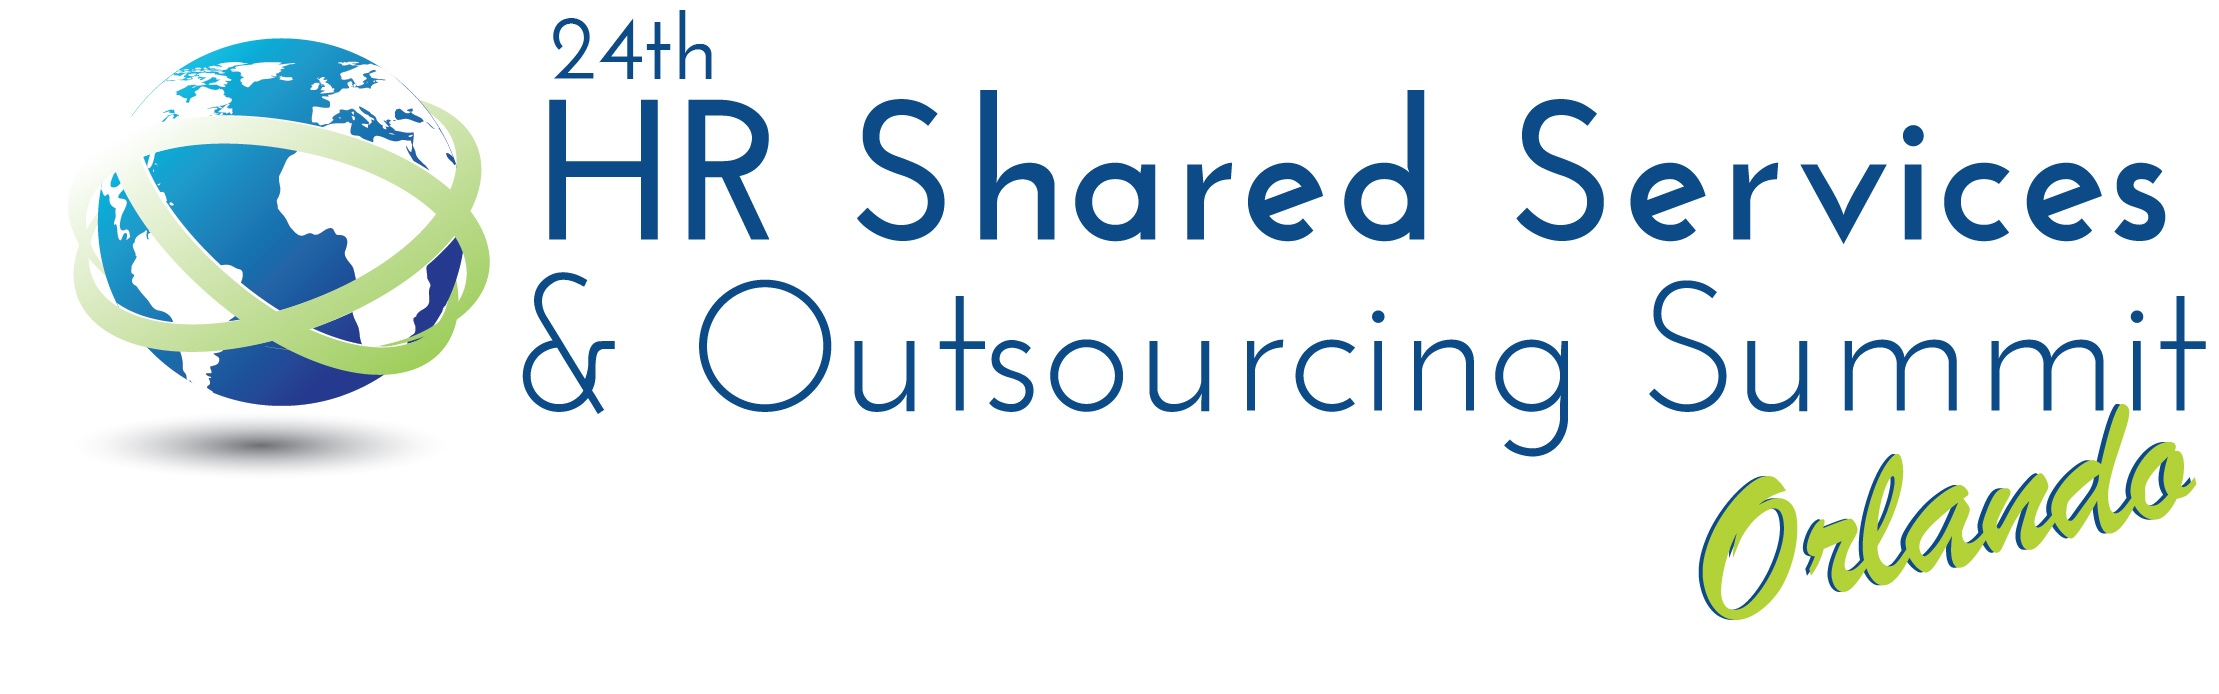 Event Guide: 24th HR Shared Services & Outsourcing Summit